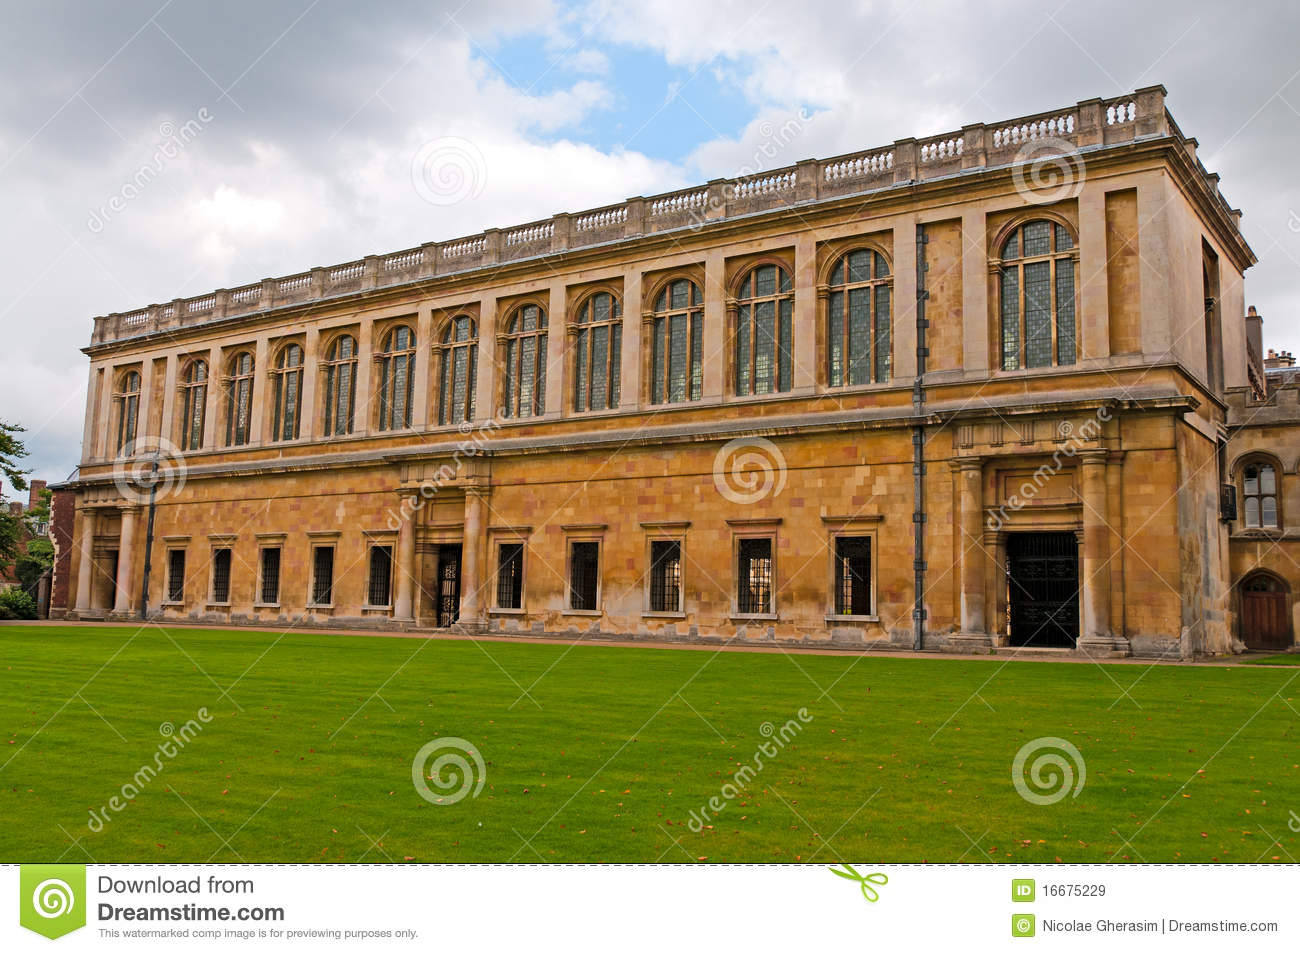 Wren library stock image  Image of historical, library